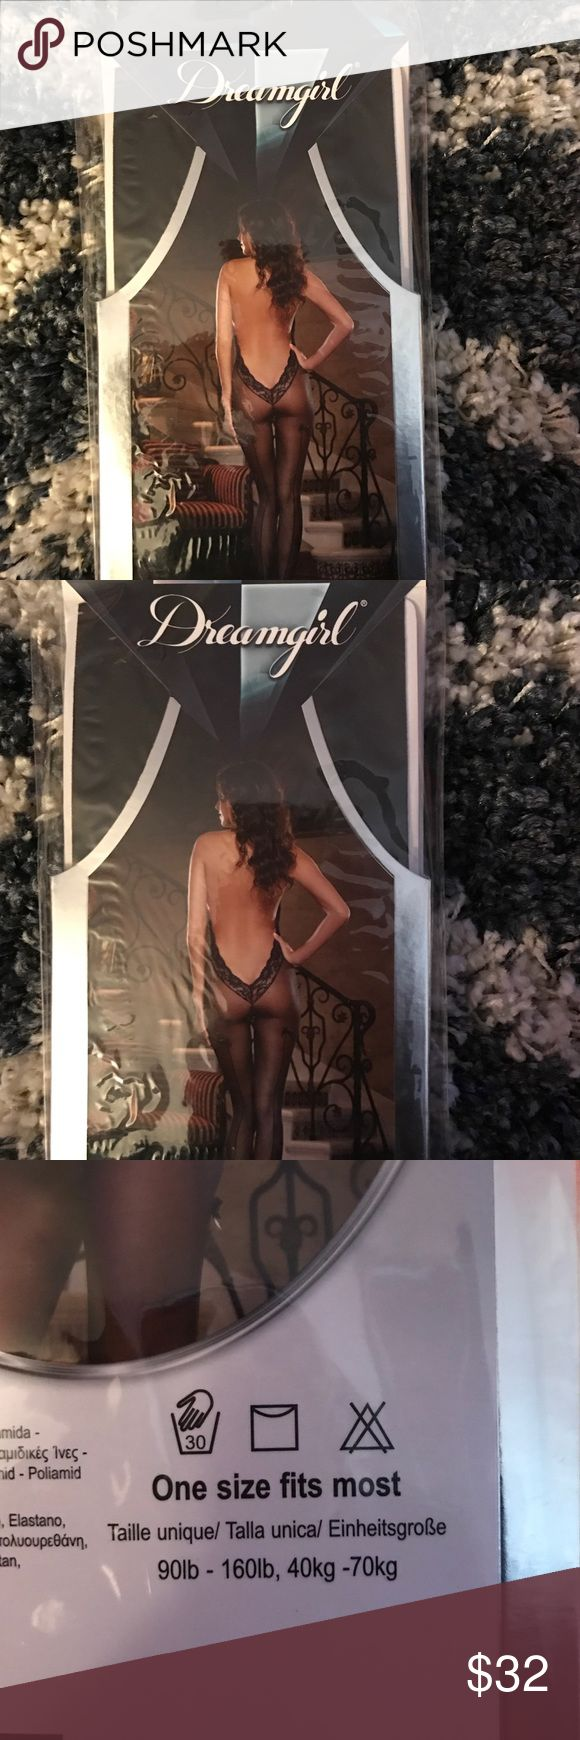 🎉Sexy🎉 Sheer halter body stocking with low V back. Must have bedroom attire😍😍 Intimates & Sleepwear